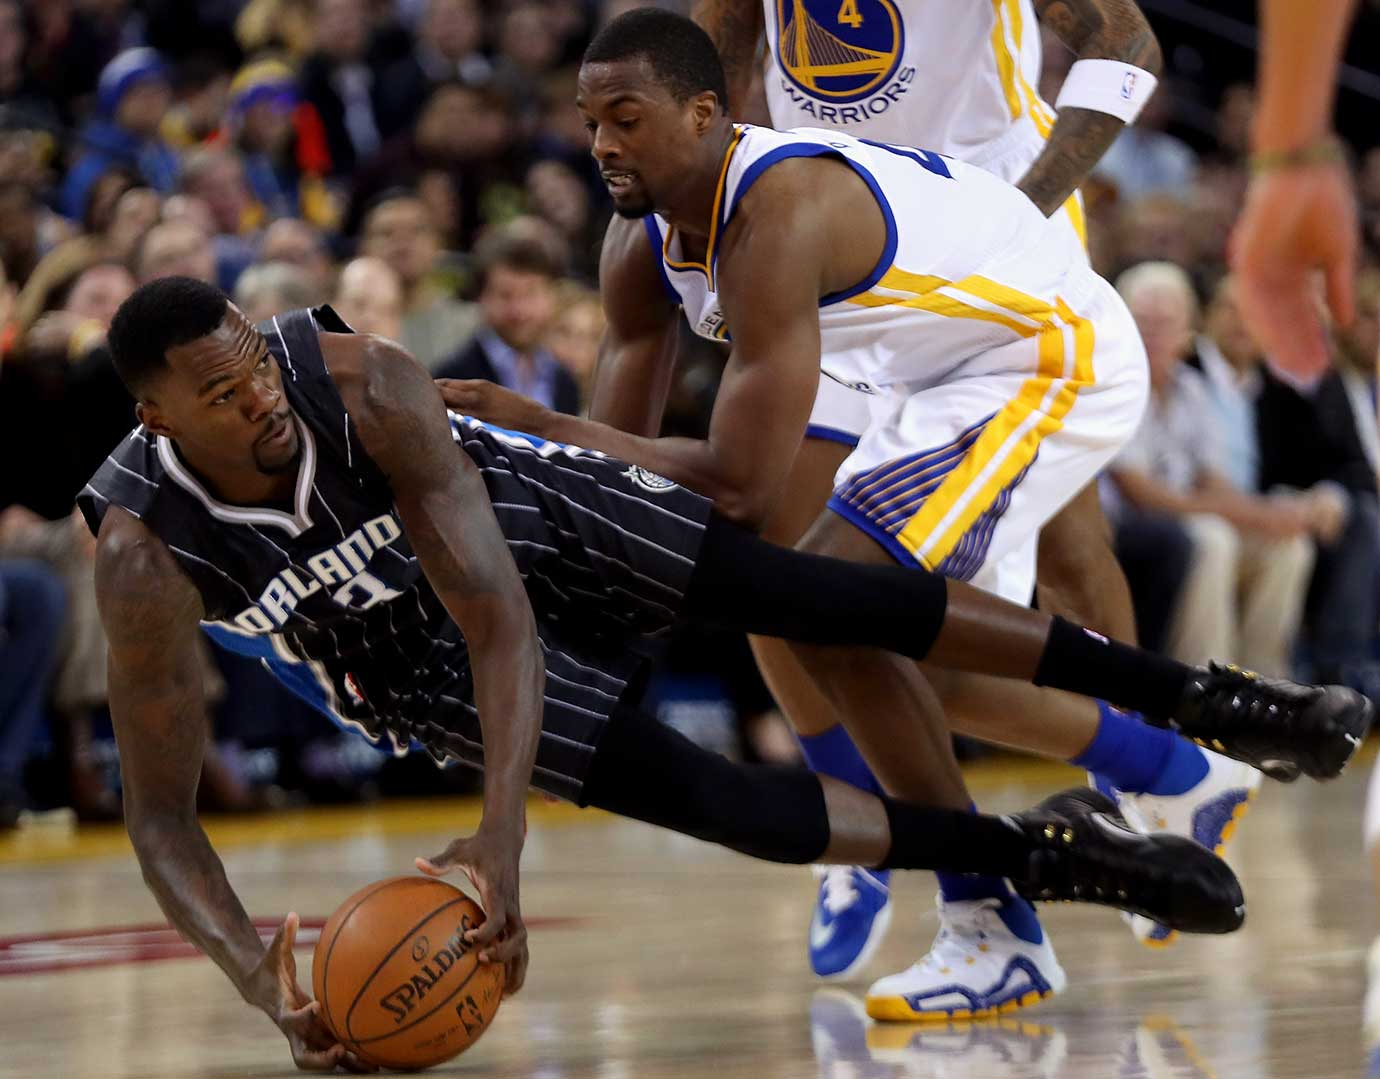 Dewayne Dedmon of Orlando and Harrison Barnes of Golden State go for a loose ball.